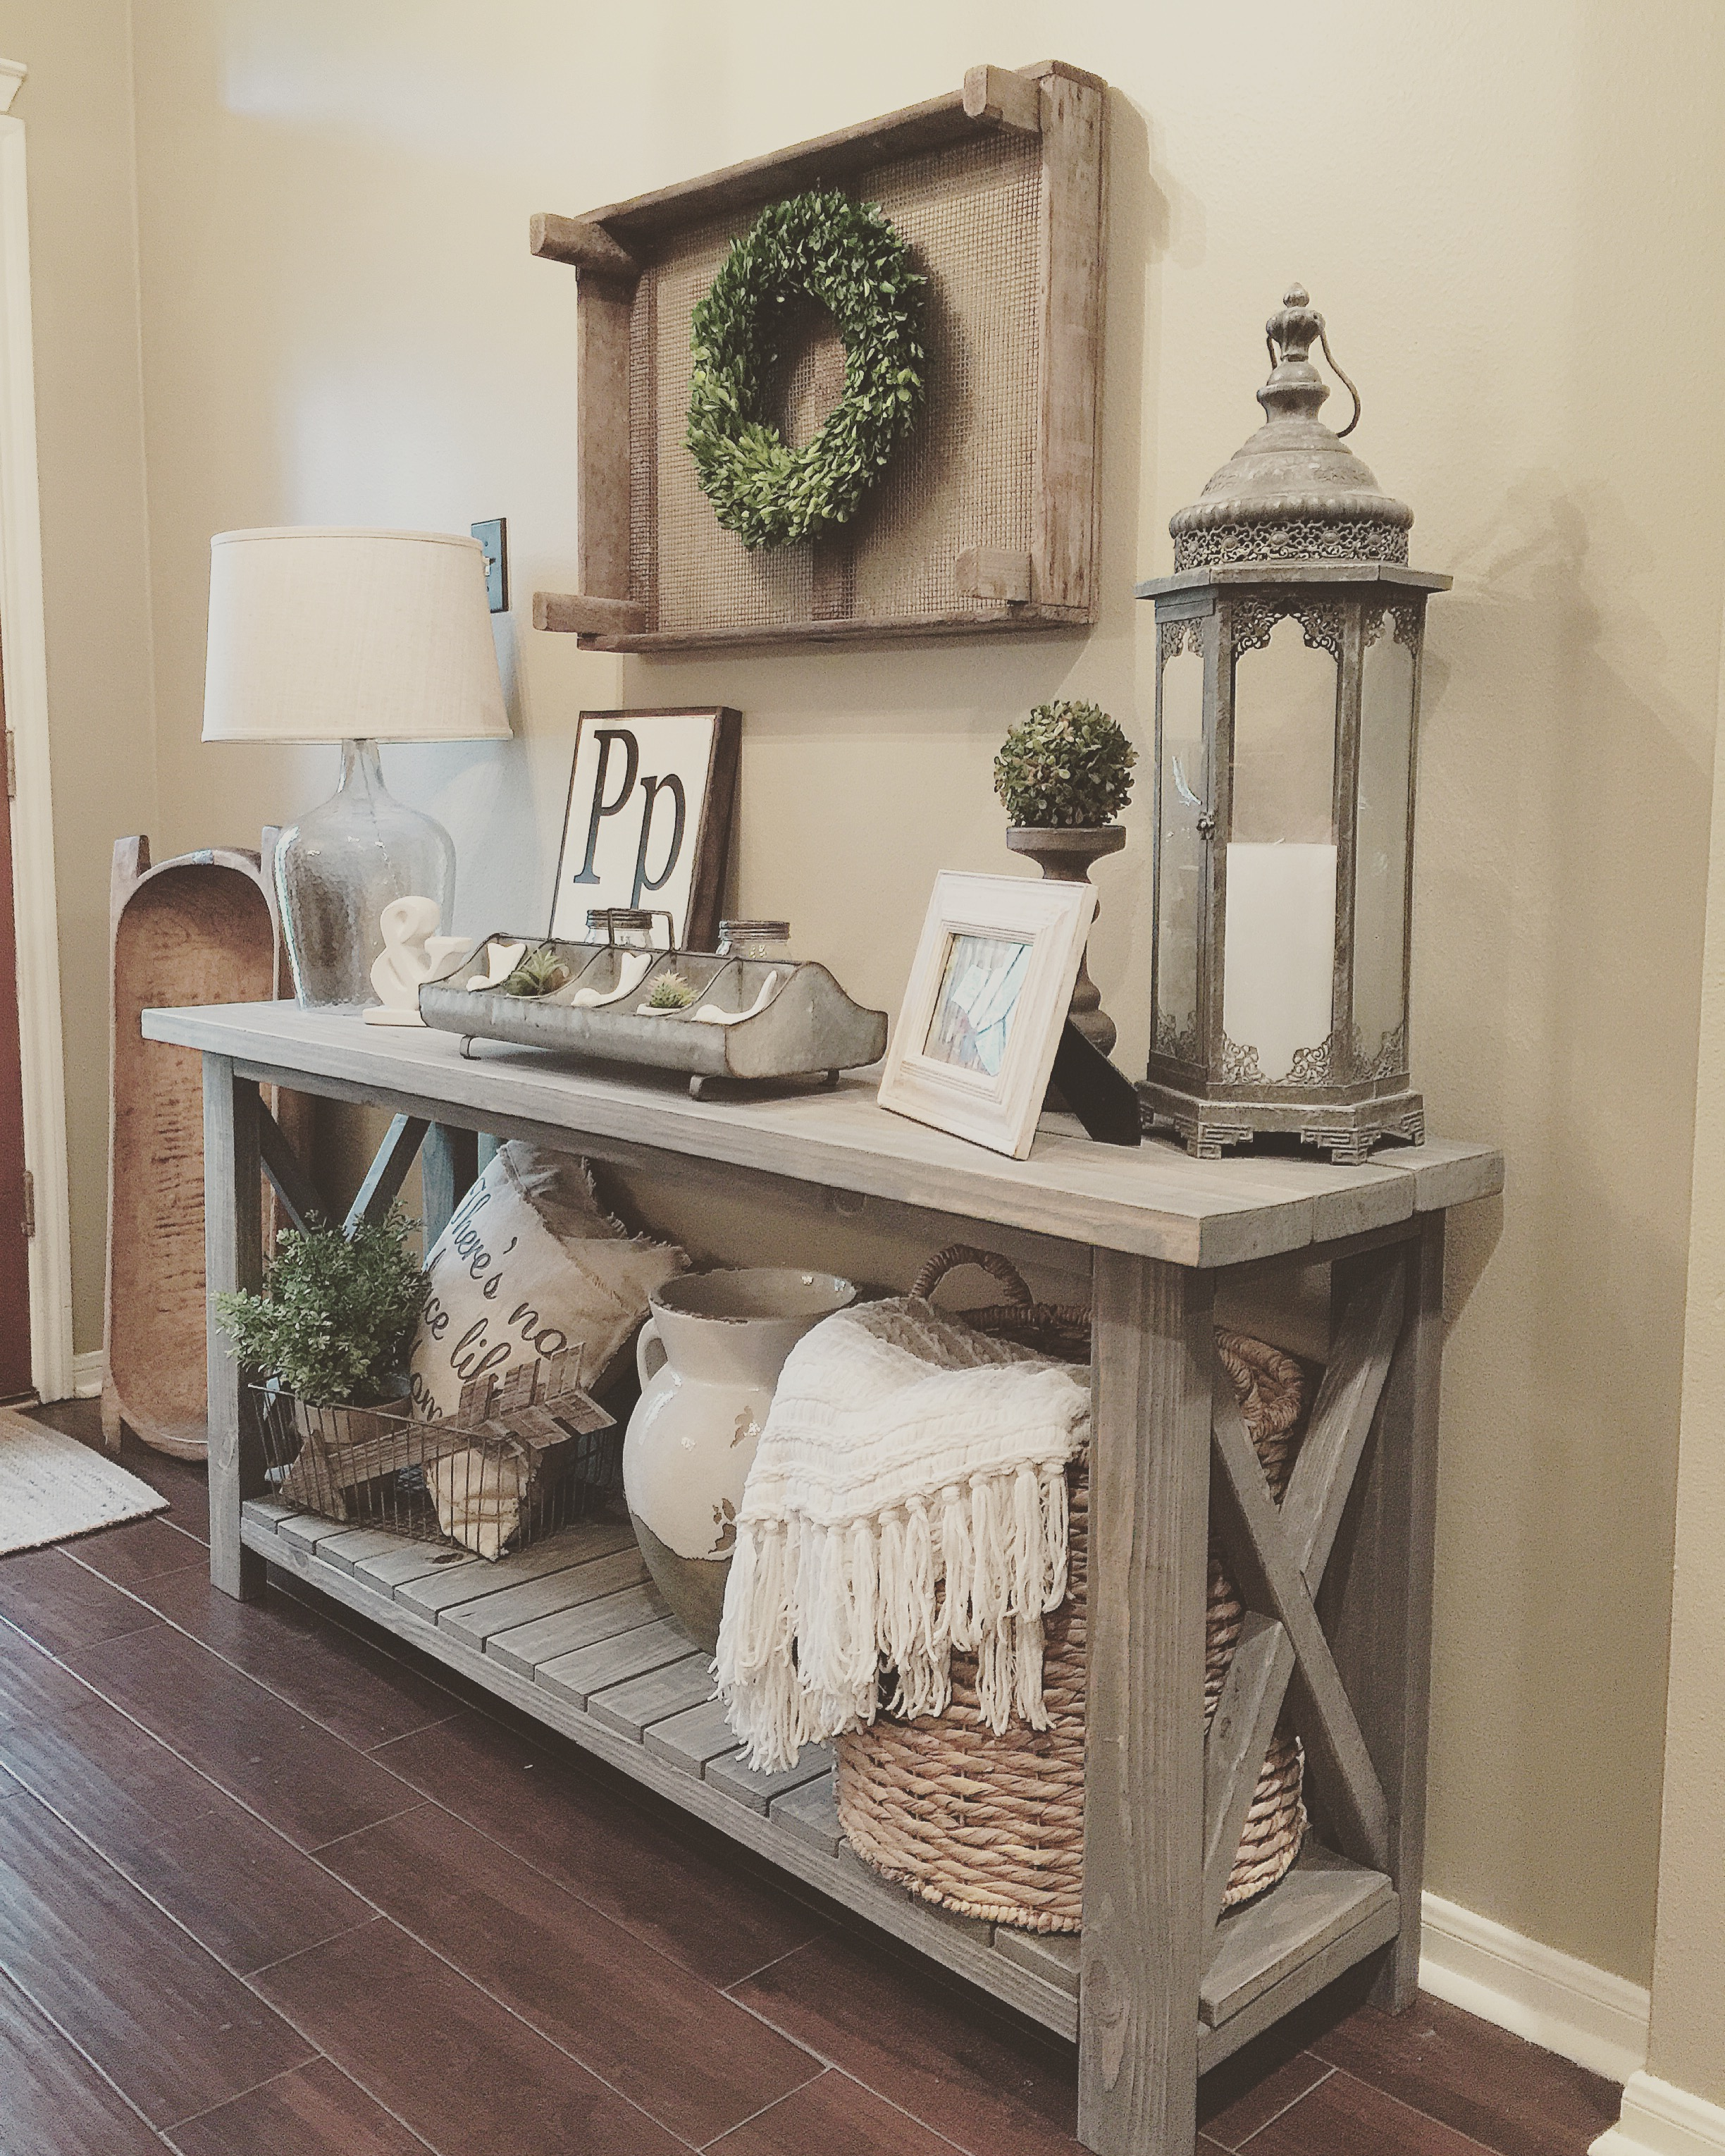 Surprising Diy Farmhouse Console Table Gmtry Best Dining Table And Chair Ideas Images Gmtryco